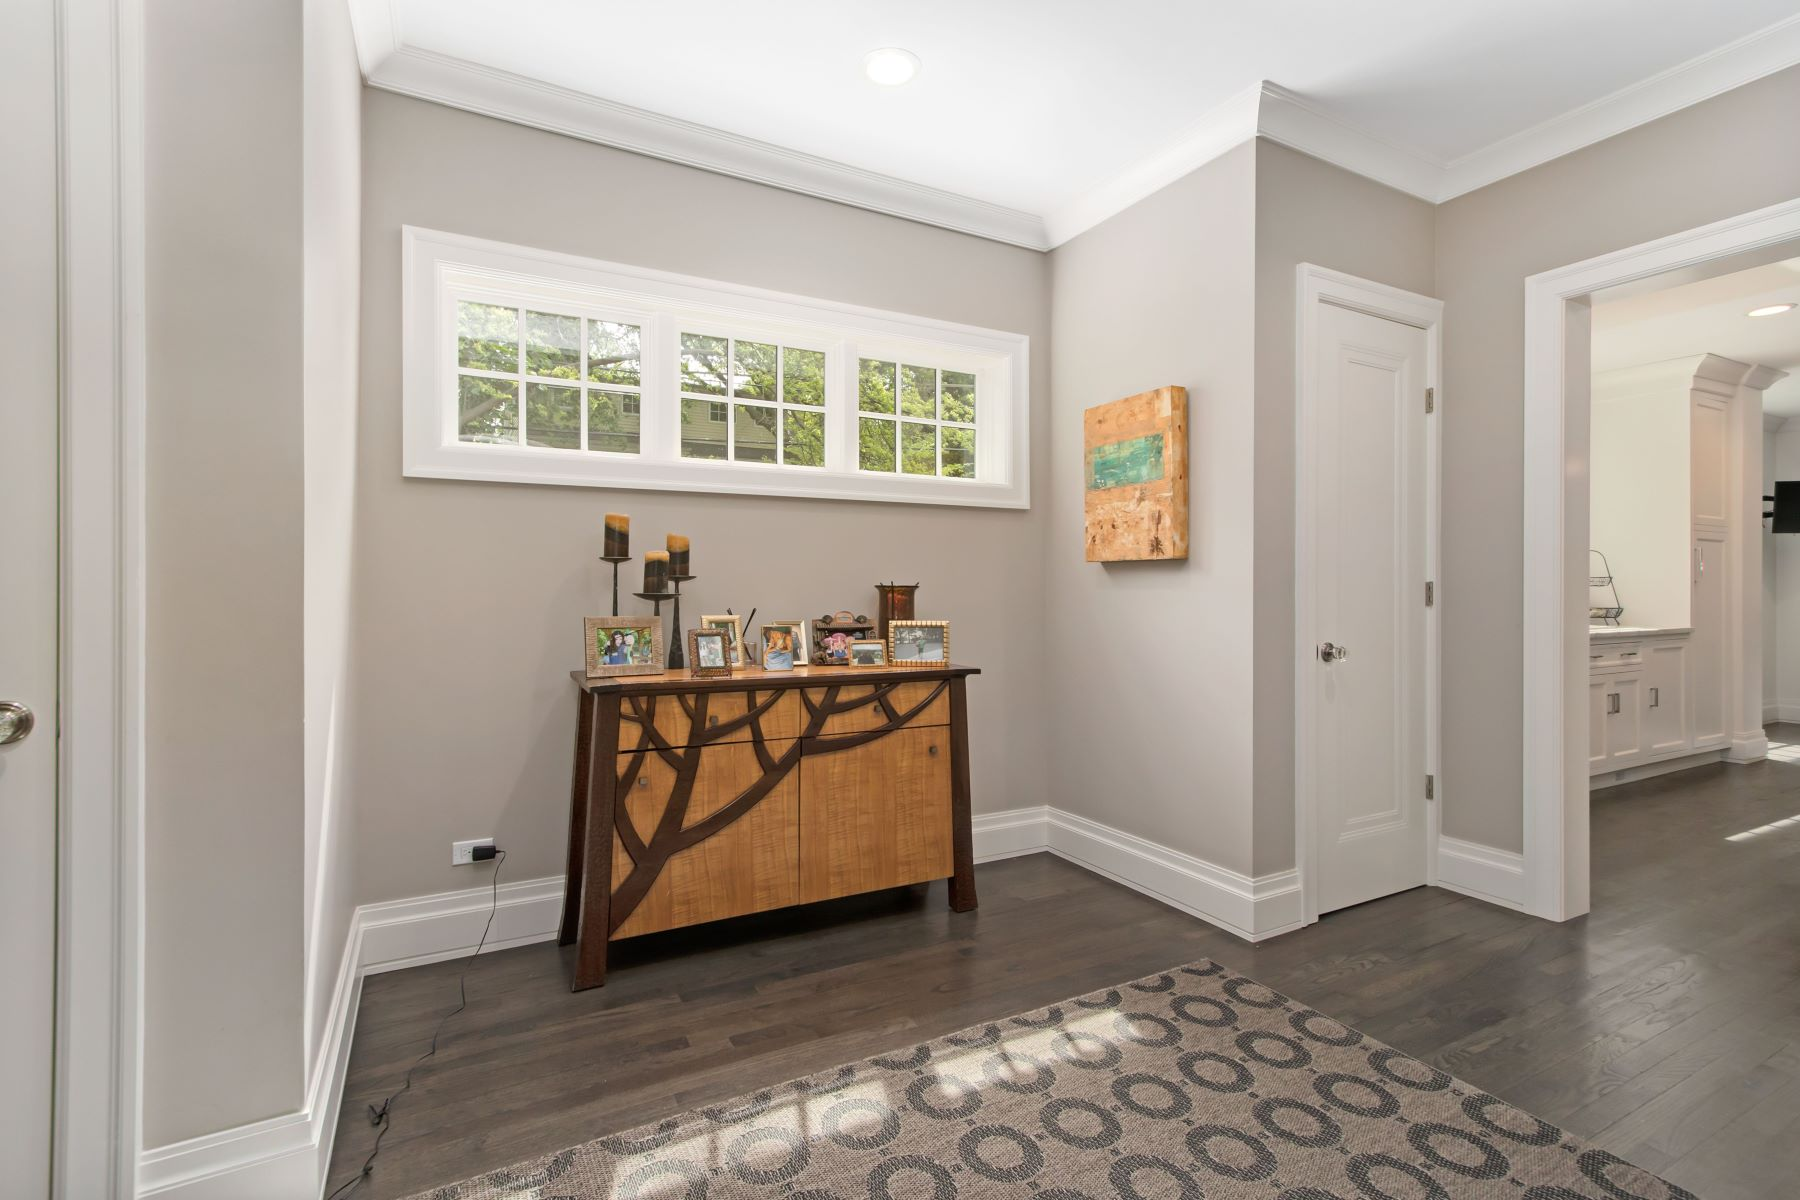 Additional photo for property listing at Extradorinary Evanston Home! 2950 Payne Street Evanston, Illinois 60201 United States